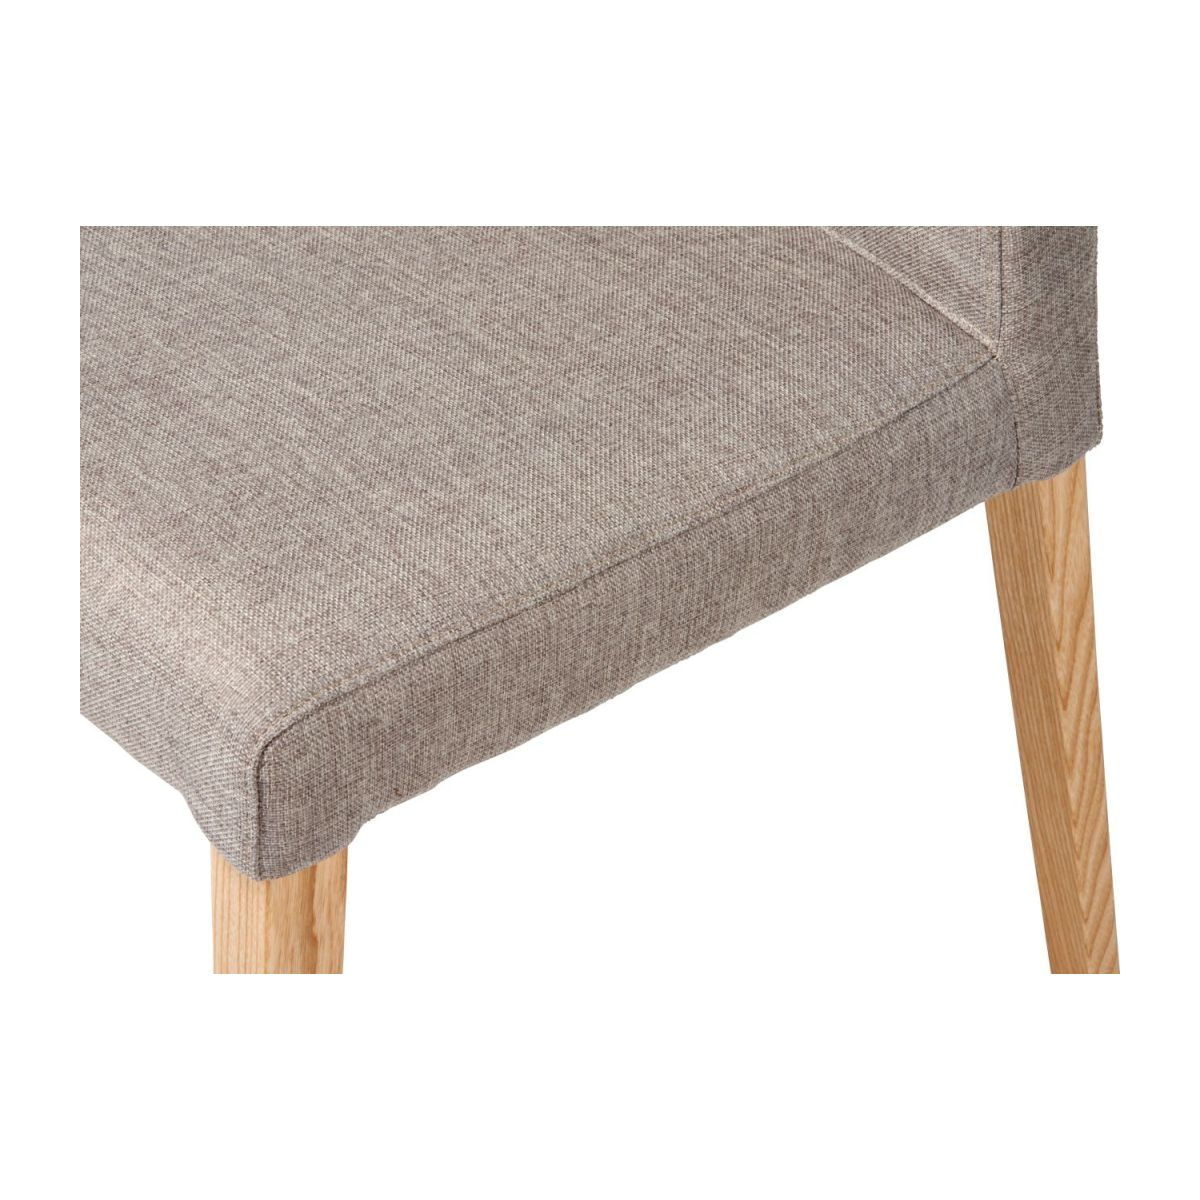 Chair made of fabric, beige with ash legs n°7